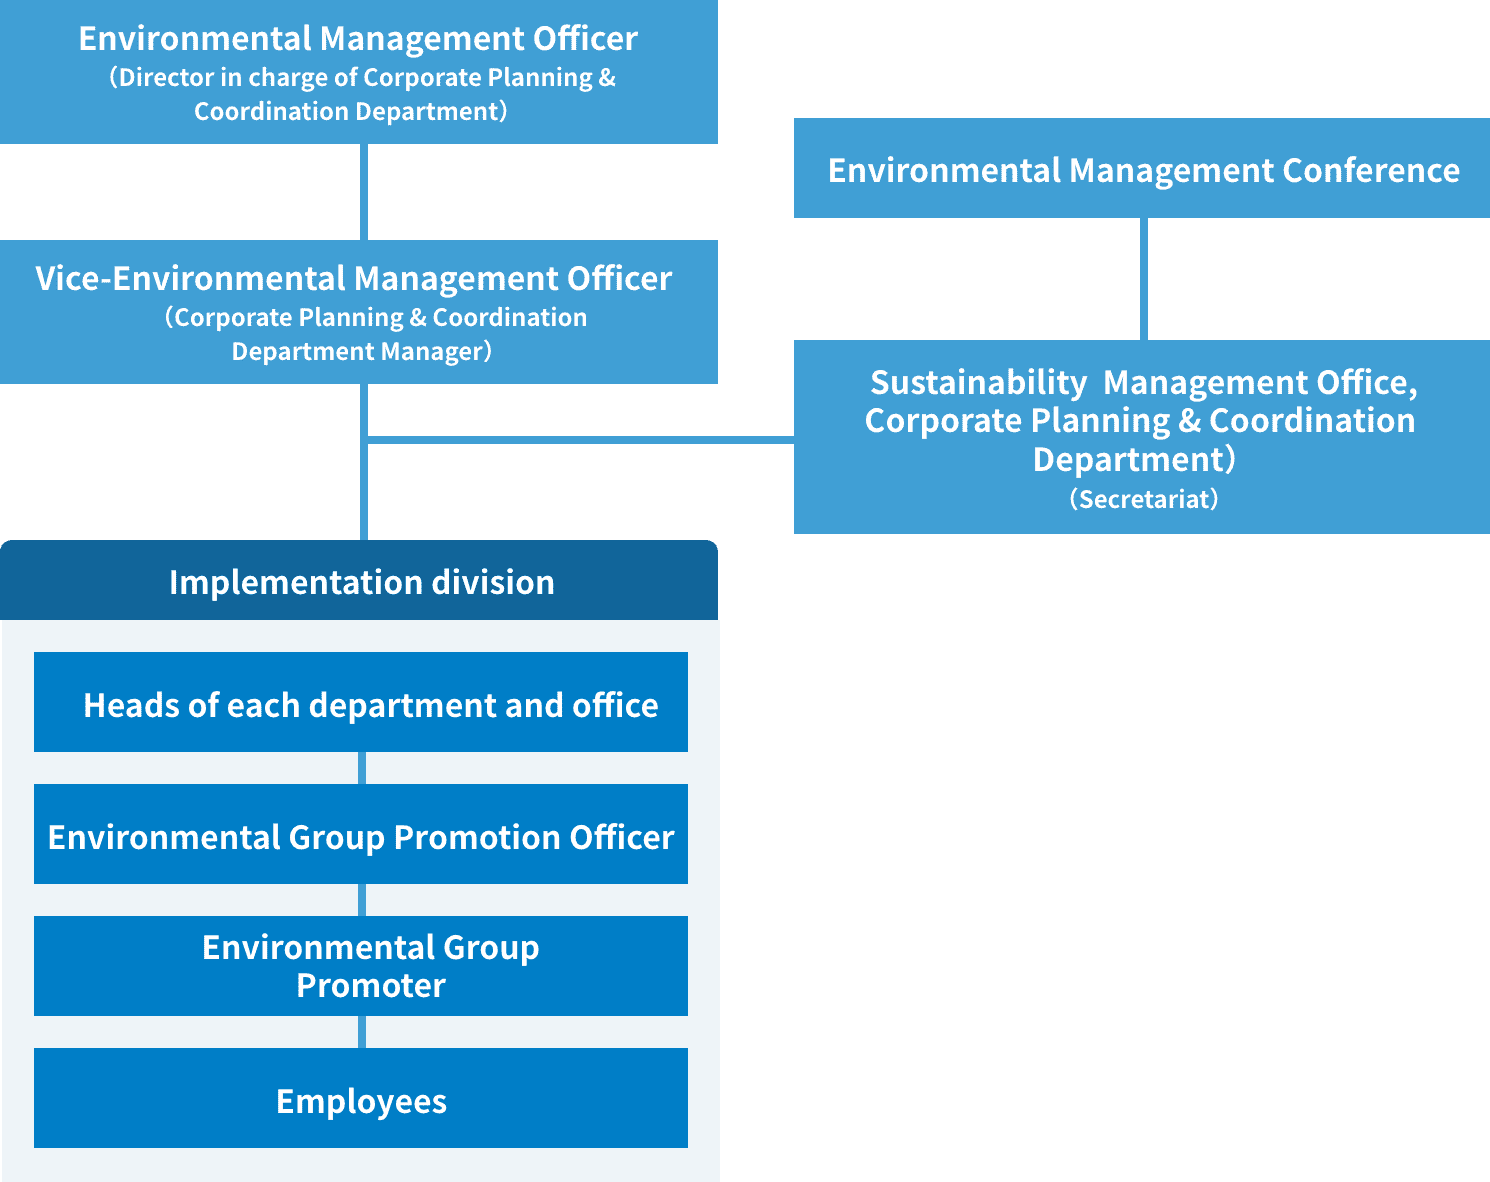 DBJ's Environmental Management Structure